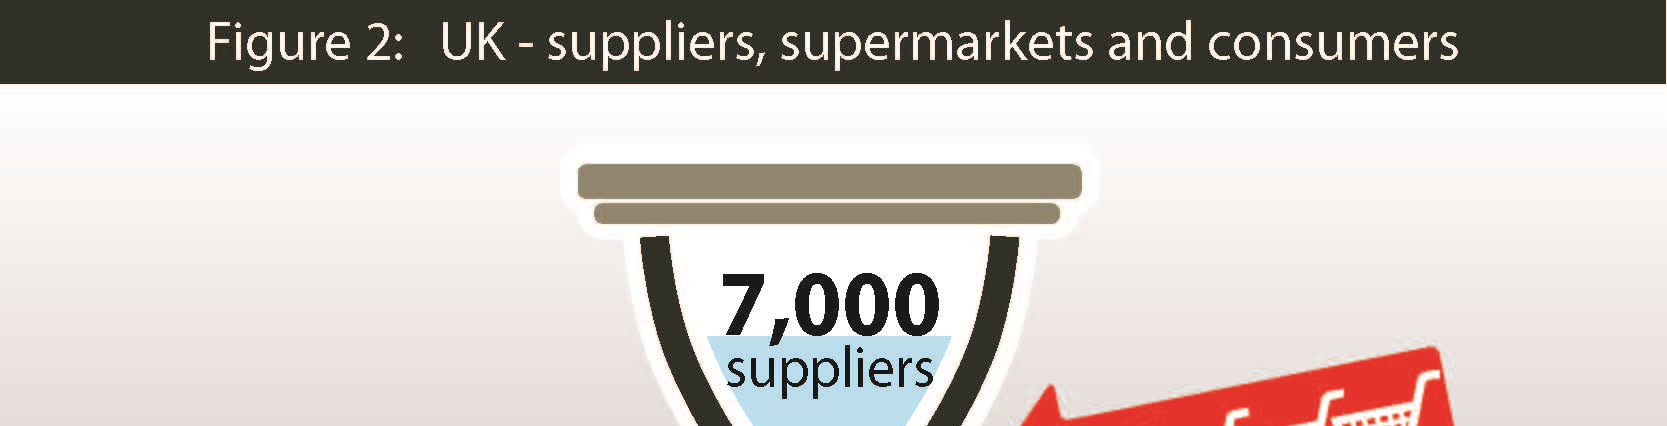 thousands. 4 The fragmented nature of the supply side tilts bargaining power even further in favour of the supermarkets.